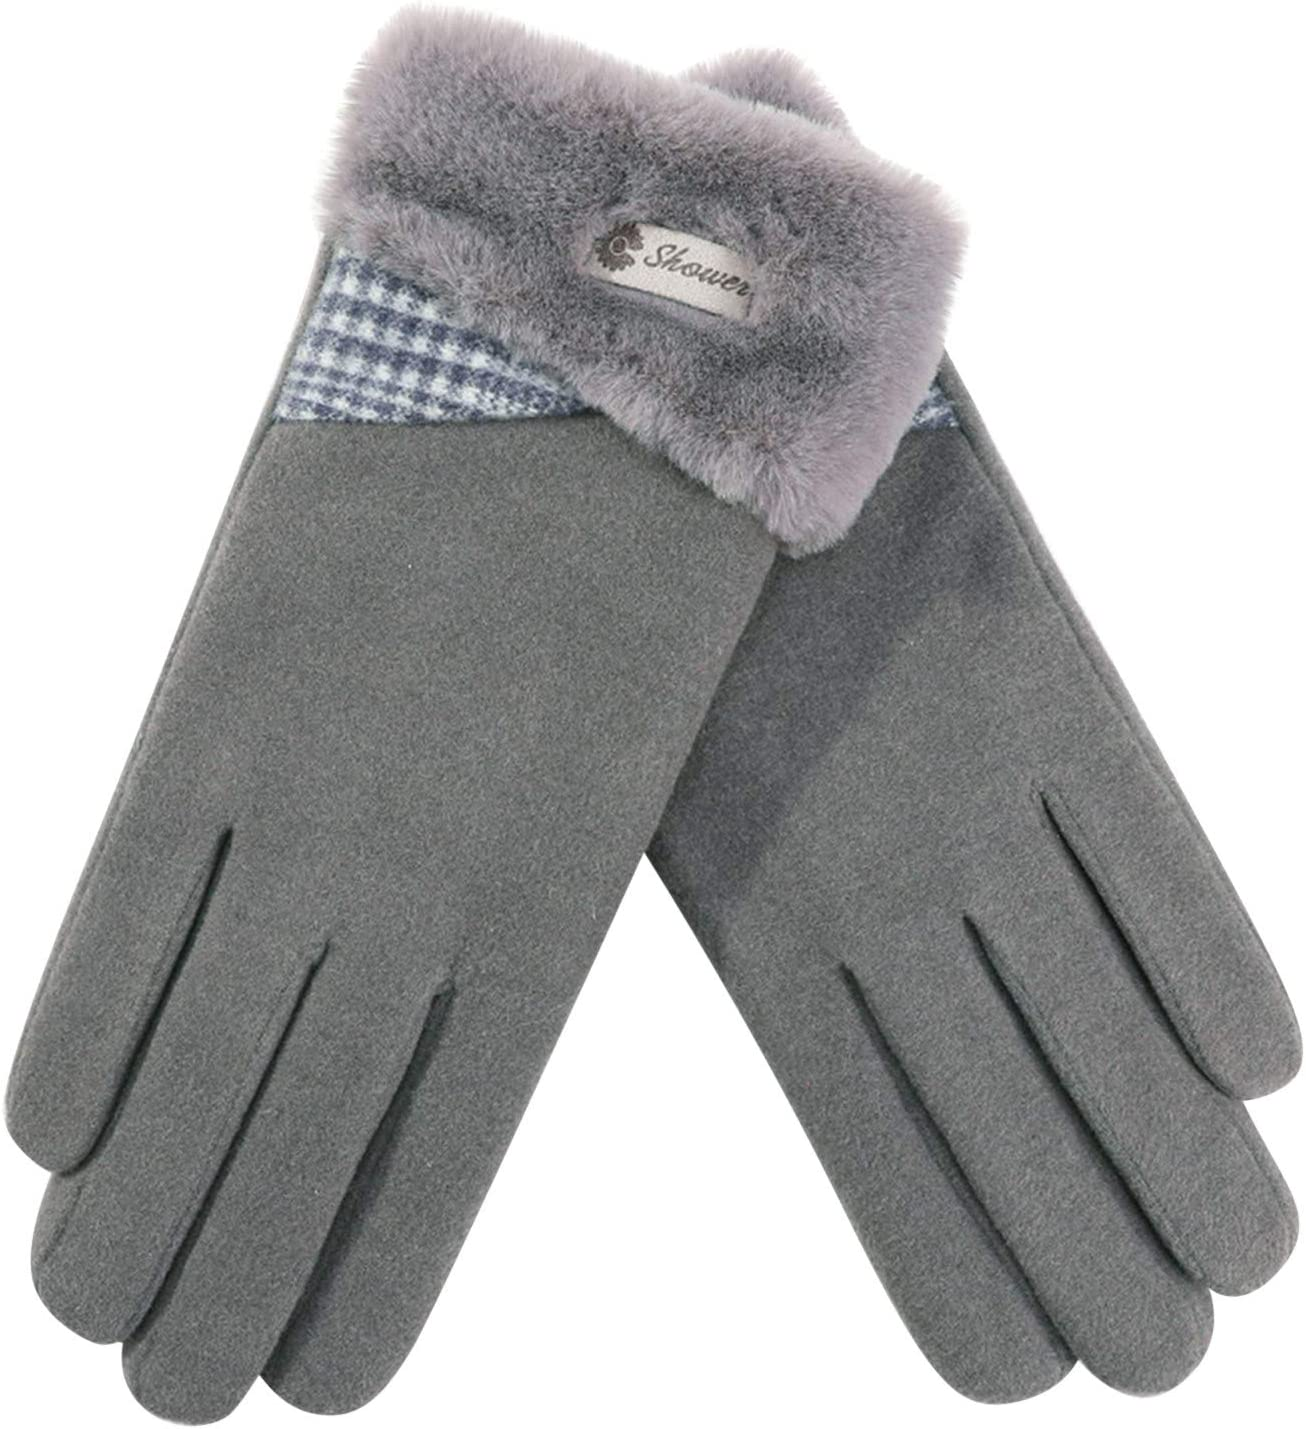 Winter Gloves -Cold Proof Thermal Work Glove Warm Fleece Insulated Cotton - Hands Warm Cold Weather for Women Driving, Cycling